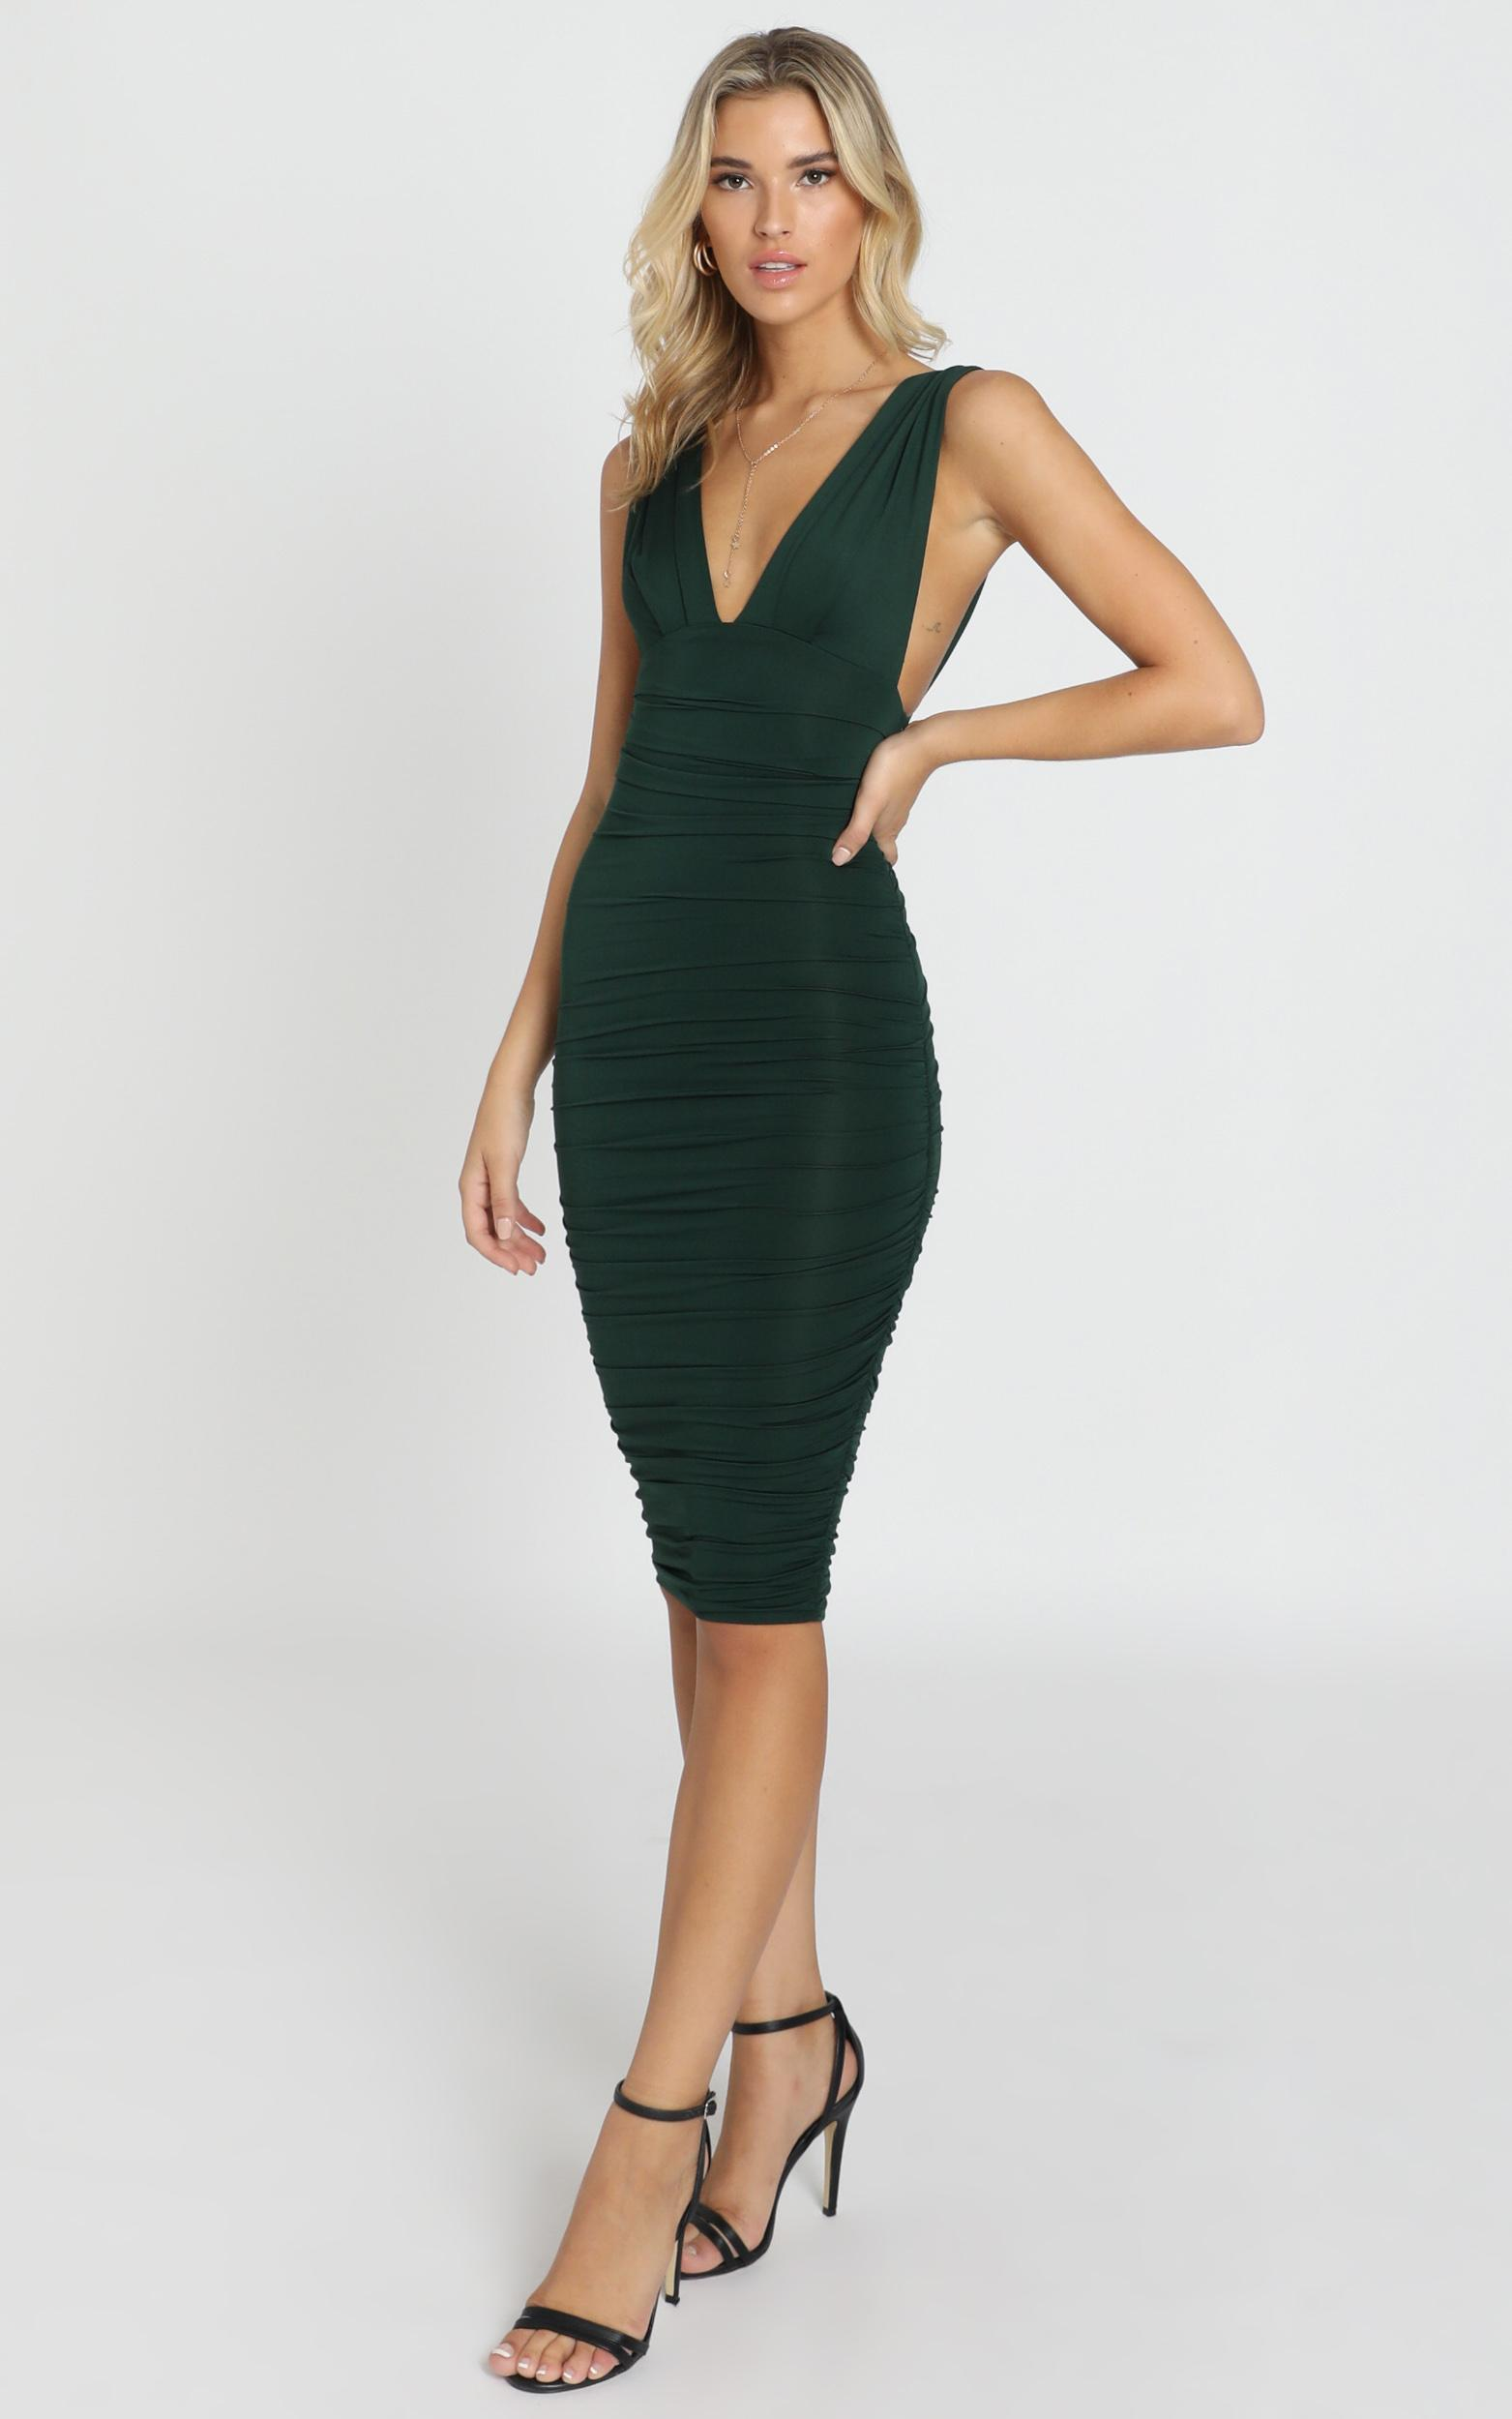 Bring It All dress in emerald green - 16 (XXL), Green, hi-res image number null